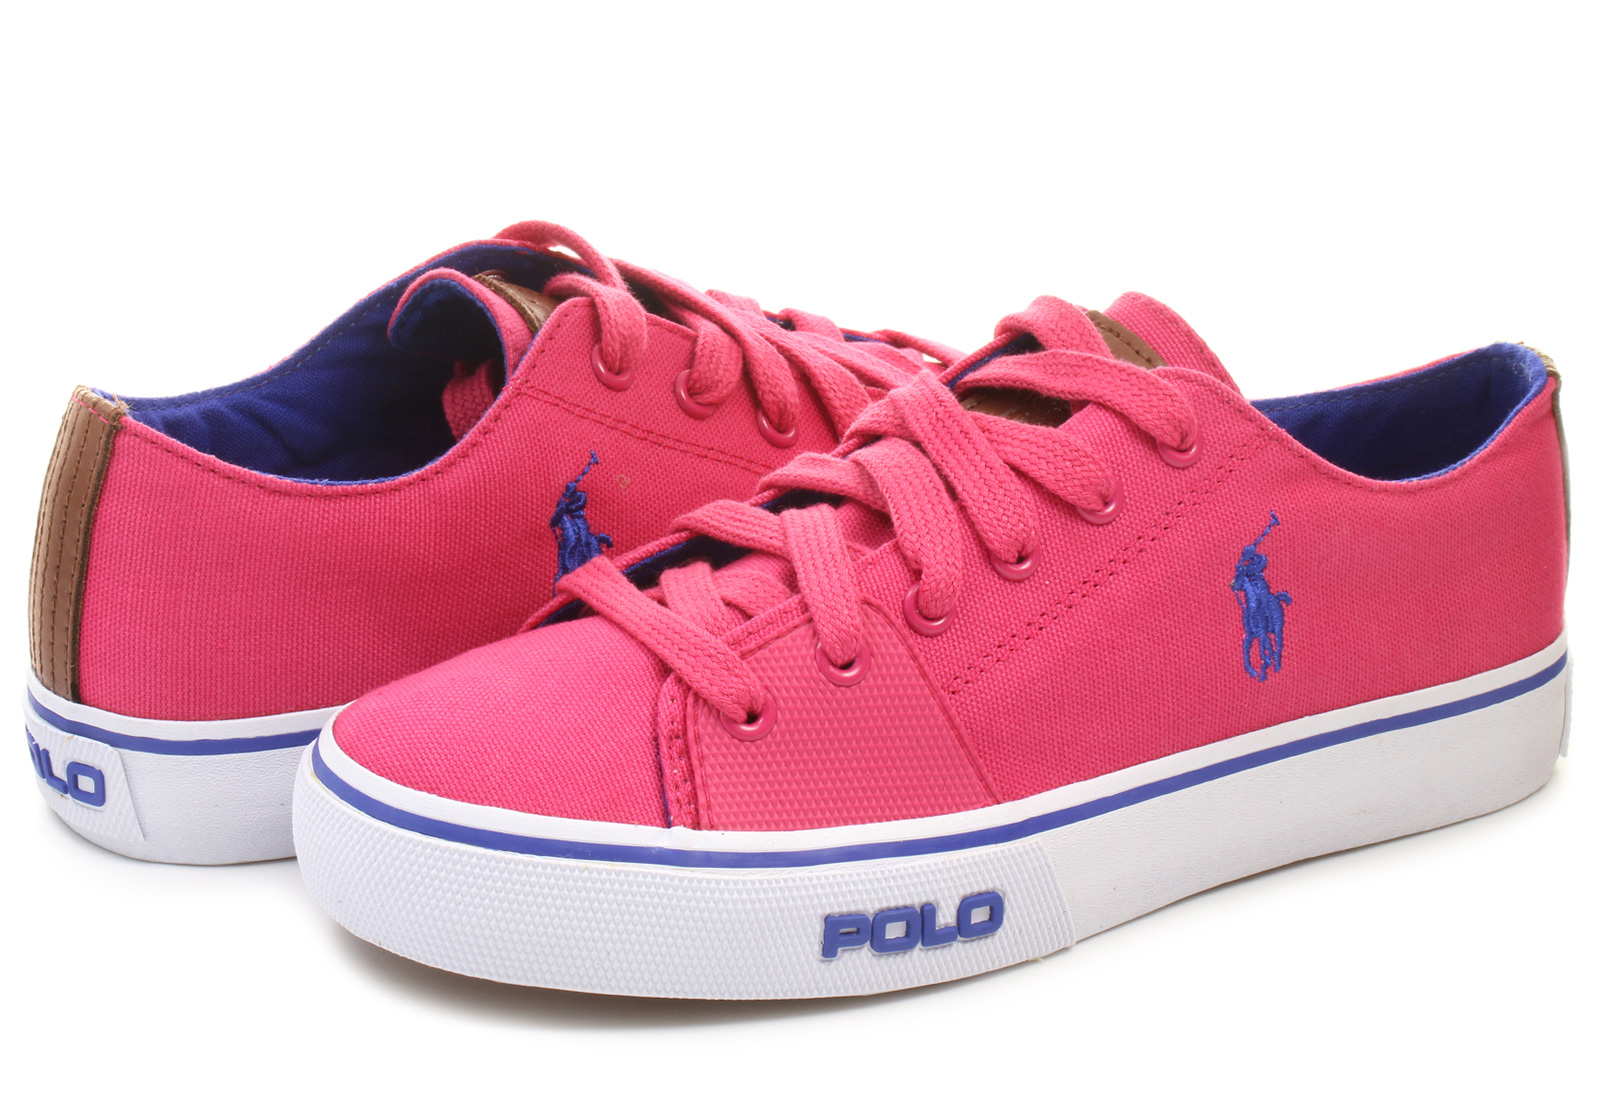 polo ralph lauren shoes cantor low 276 c w6d5e online shop for sneakers shoes and boots. Black Bedroom Furniture Sets. Home Design Ideas